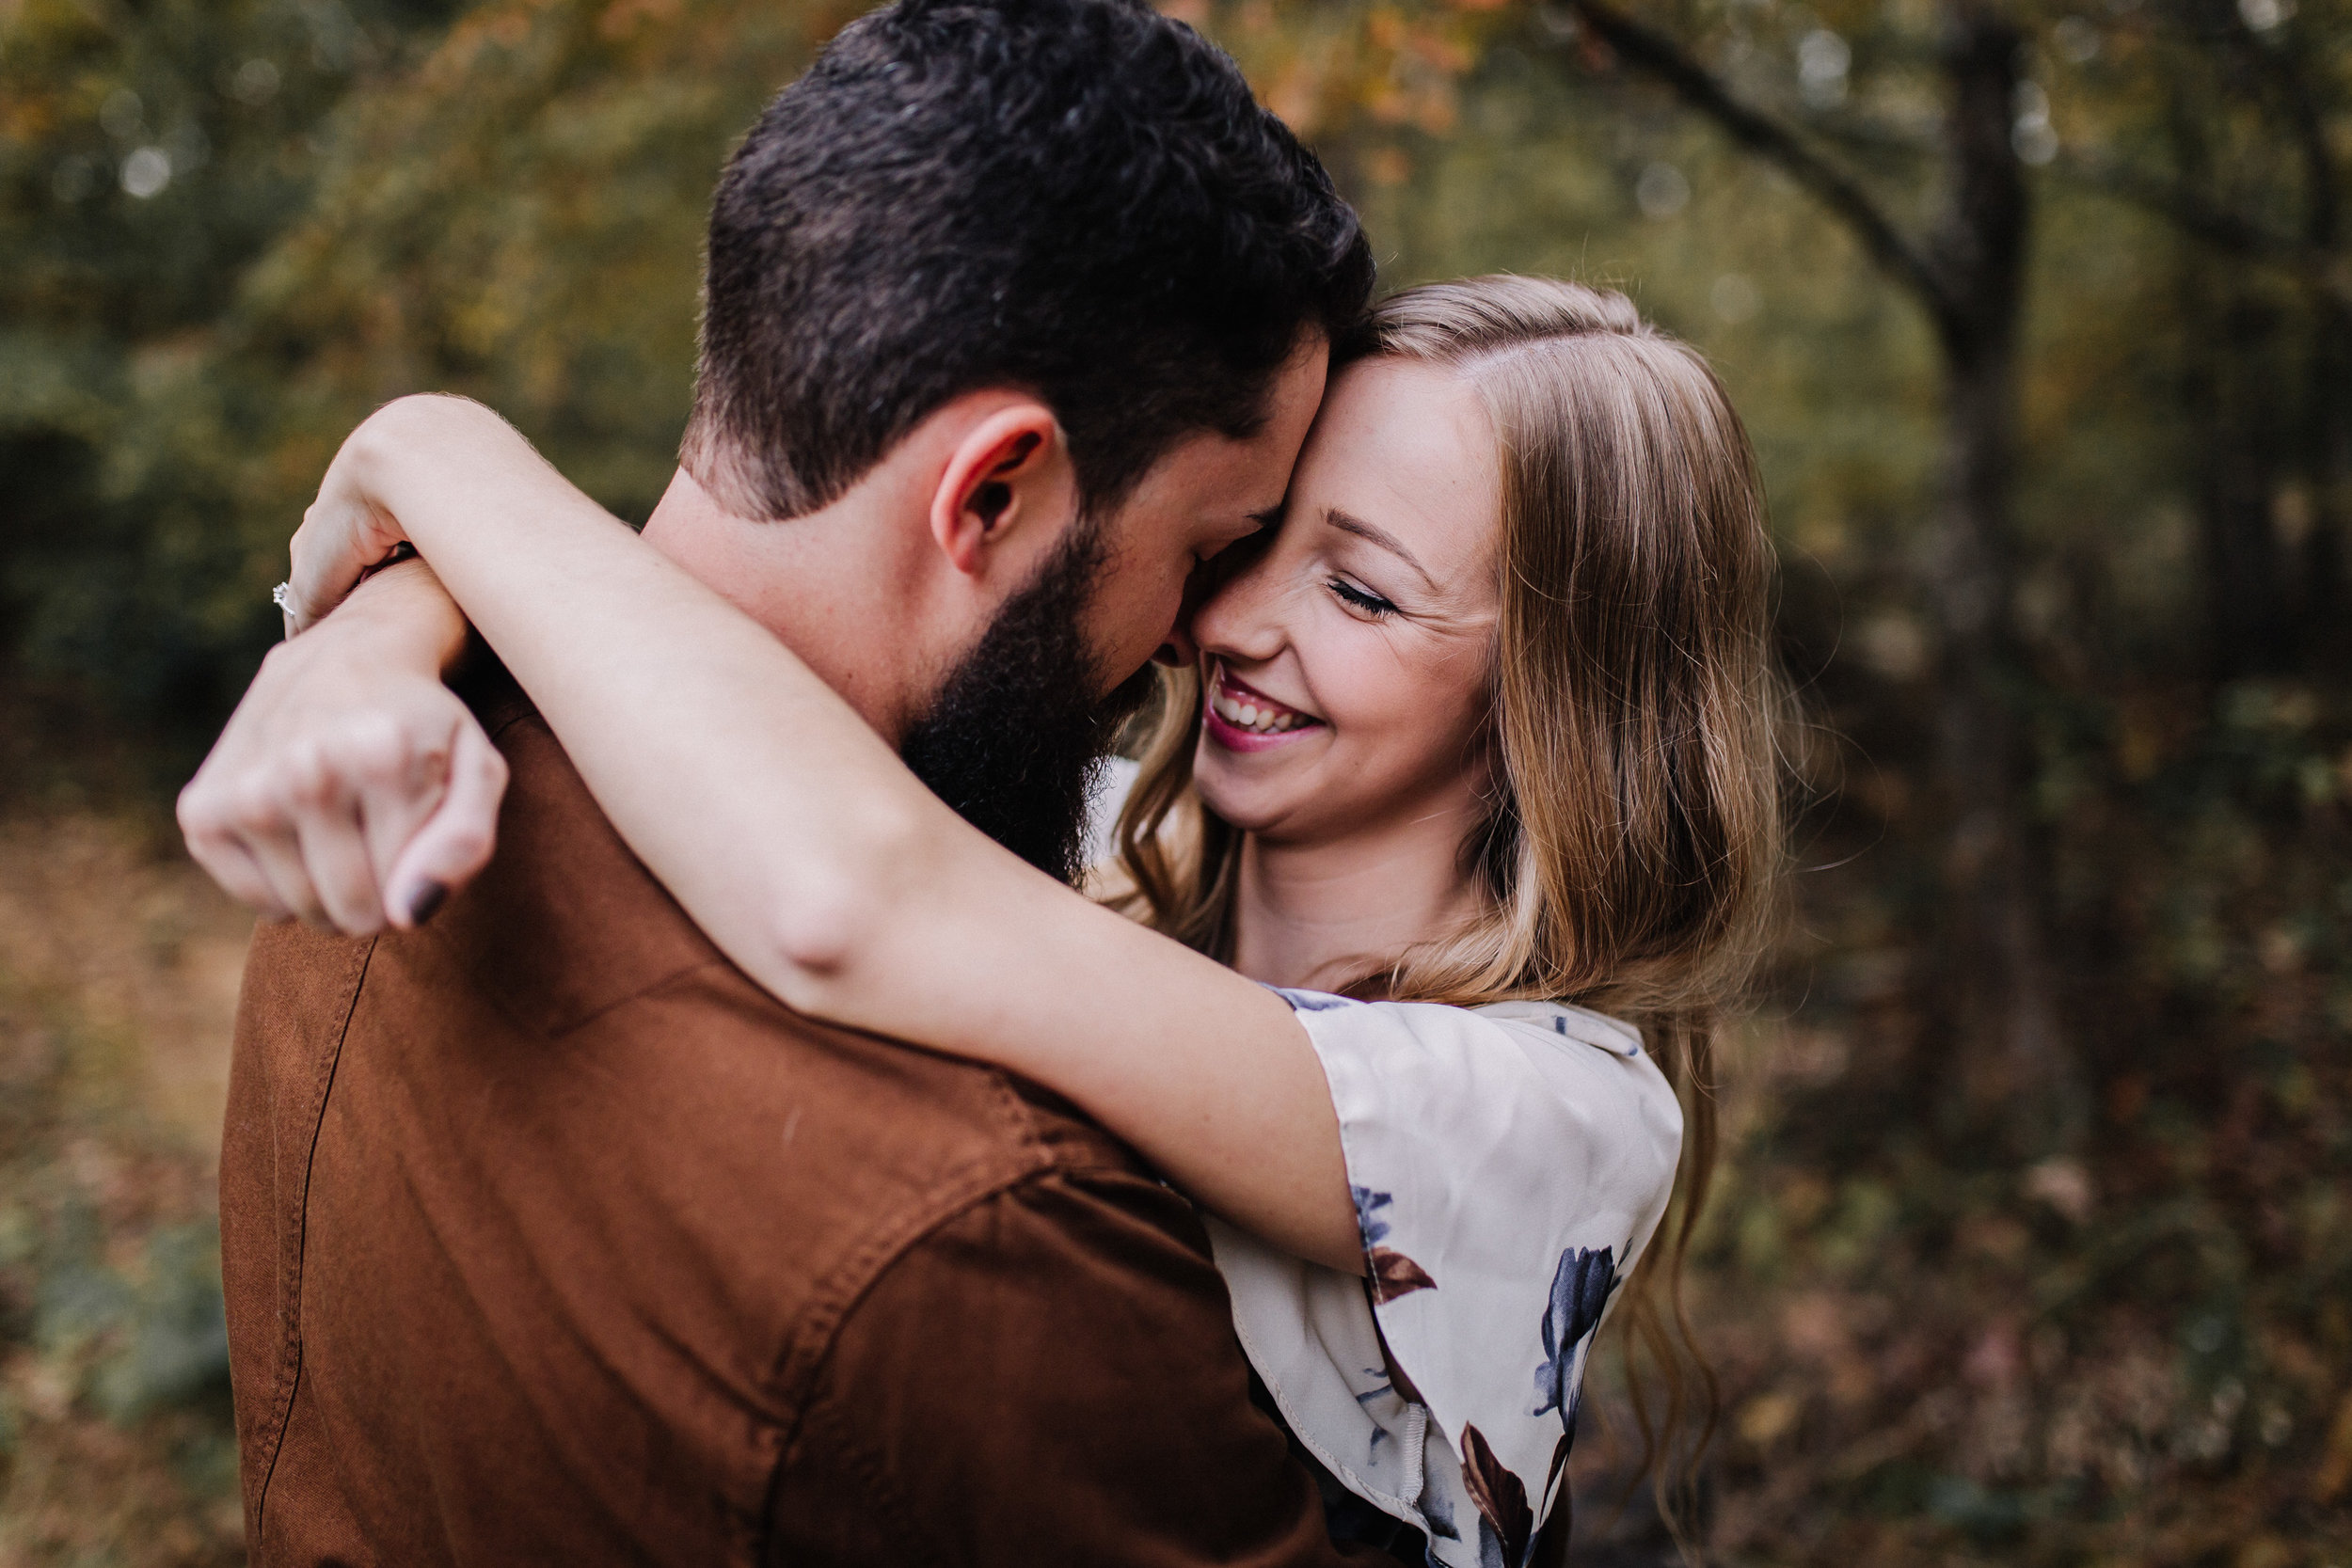 How To Avoid Looking Awkward In Your Engagement & Wedding Photos